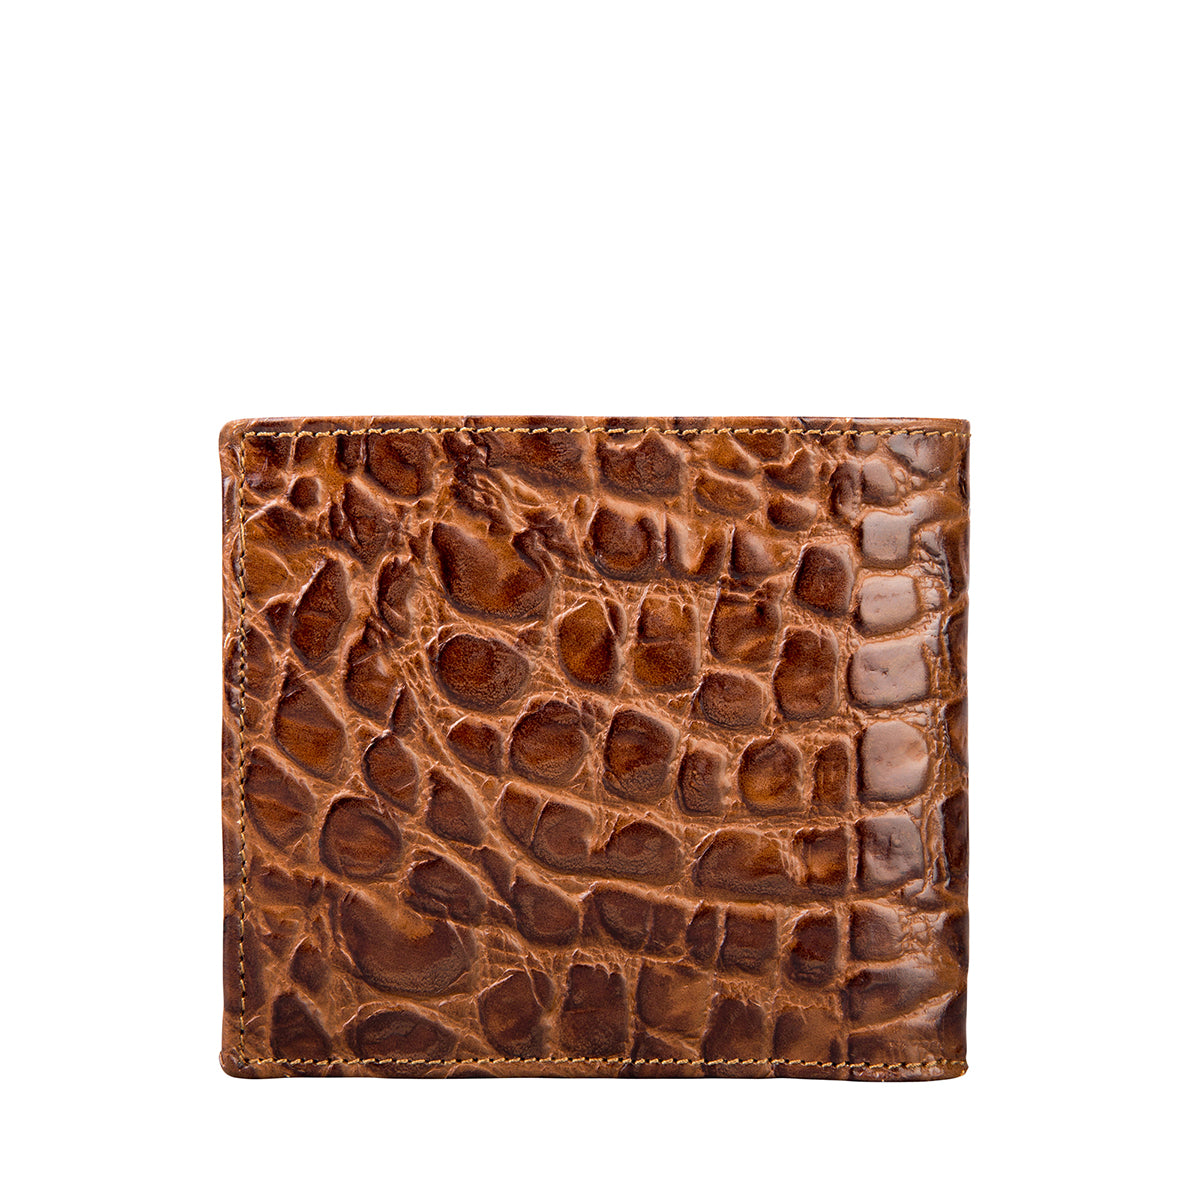 Image 2 of the 'Ticciano' Mock Croc Chocolate Veg-Tanned Leather Wallet with Coin Pocket